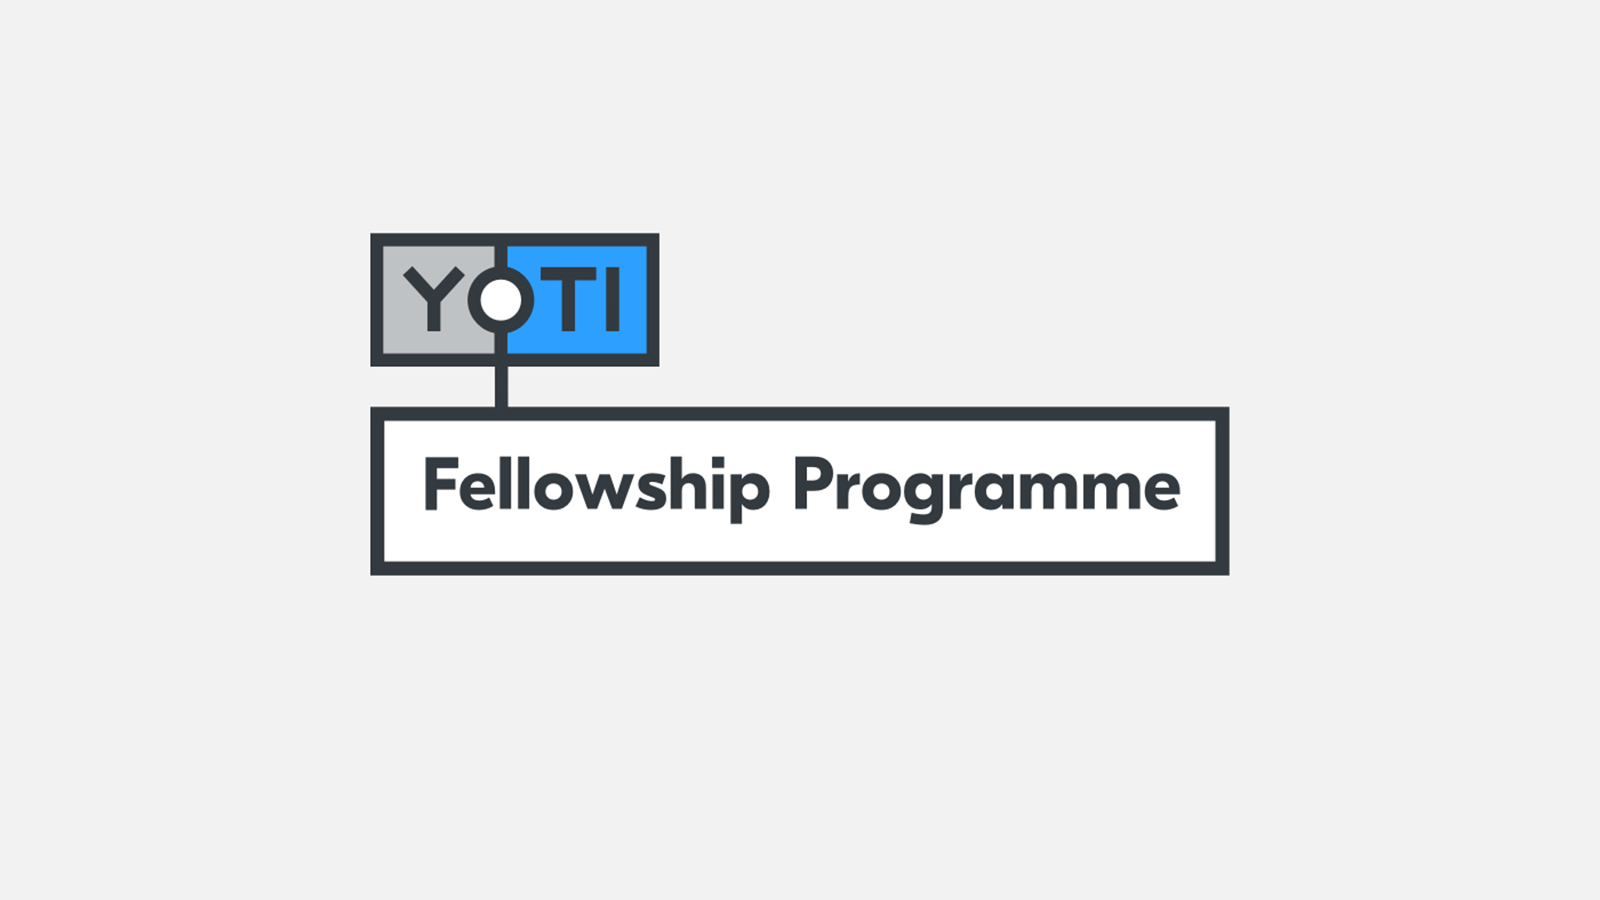 Yoti Fellowship Programme 2019 for Research, Media, Policy or Solutions Development on Digital Identities (Fully-funded)